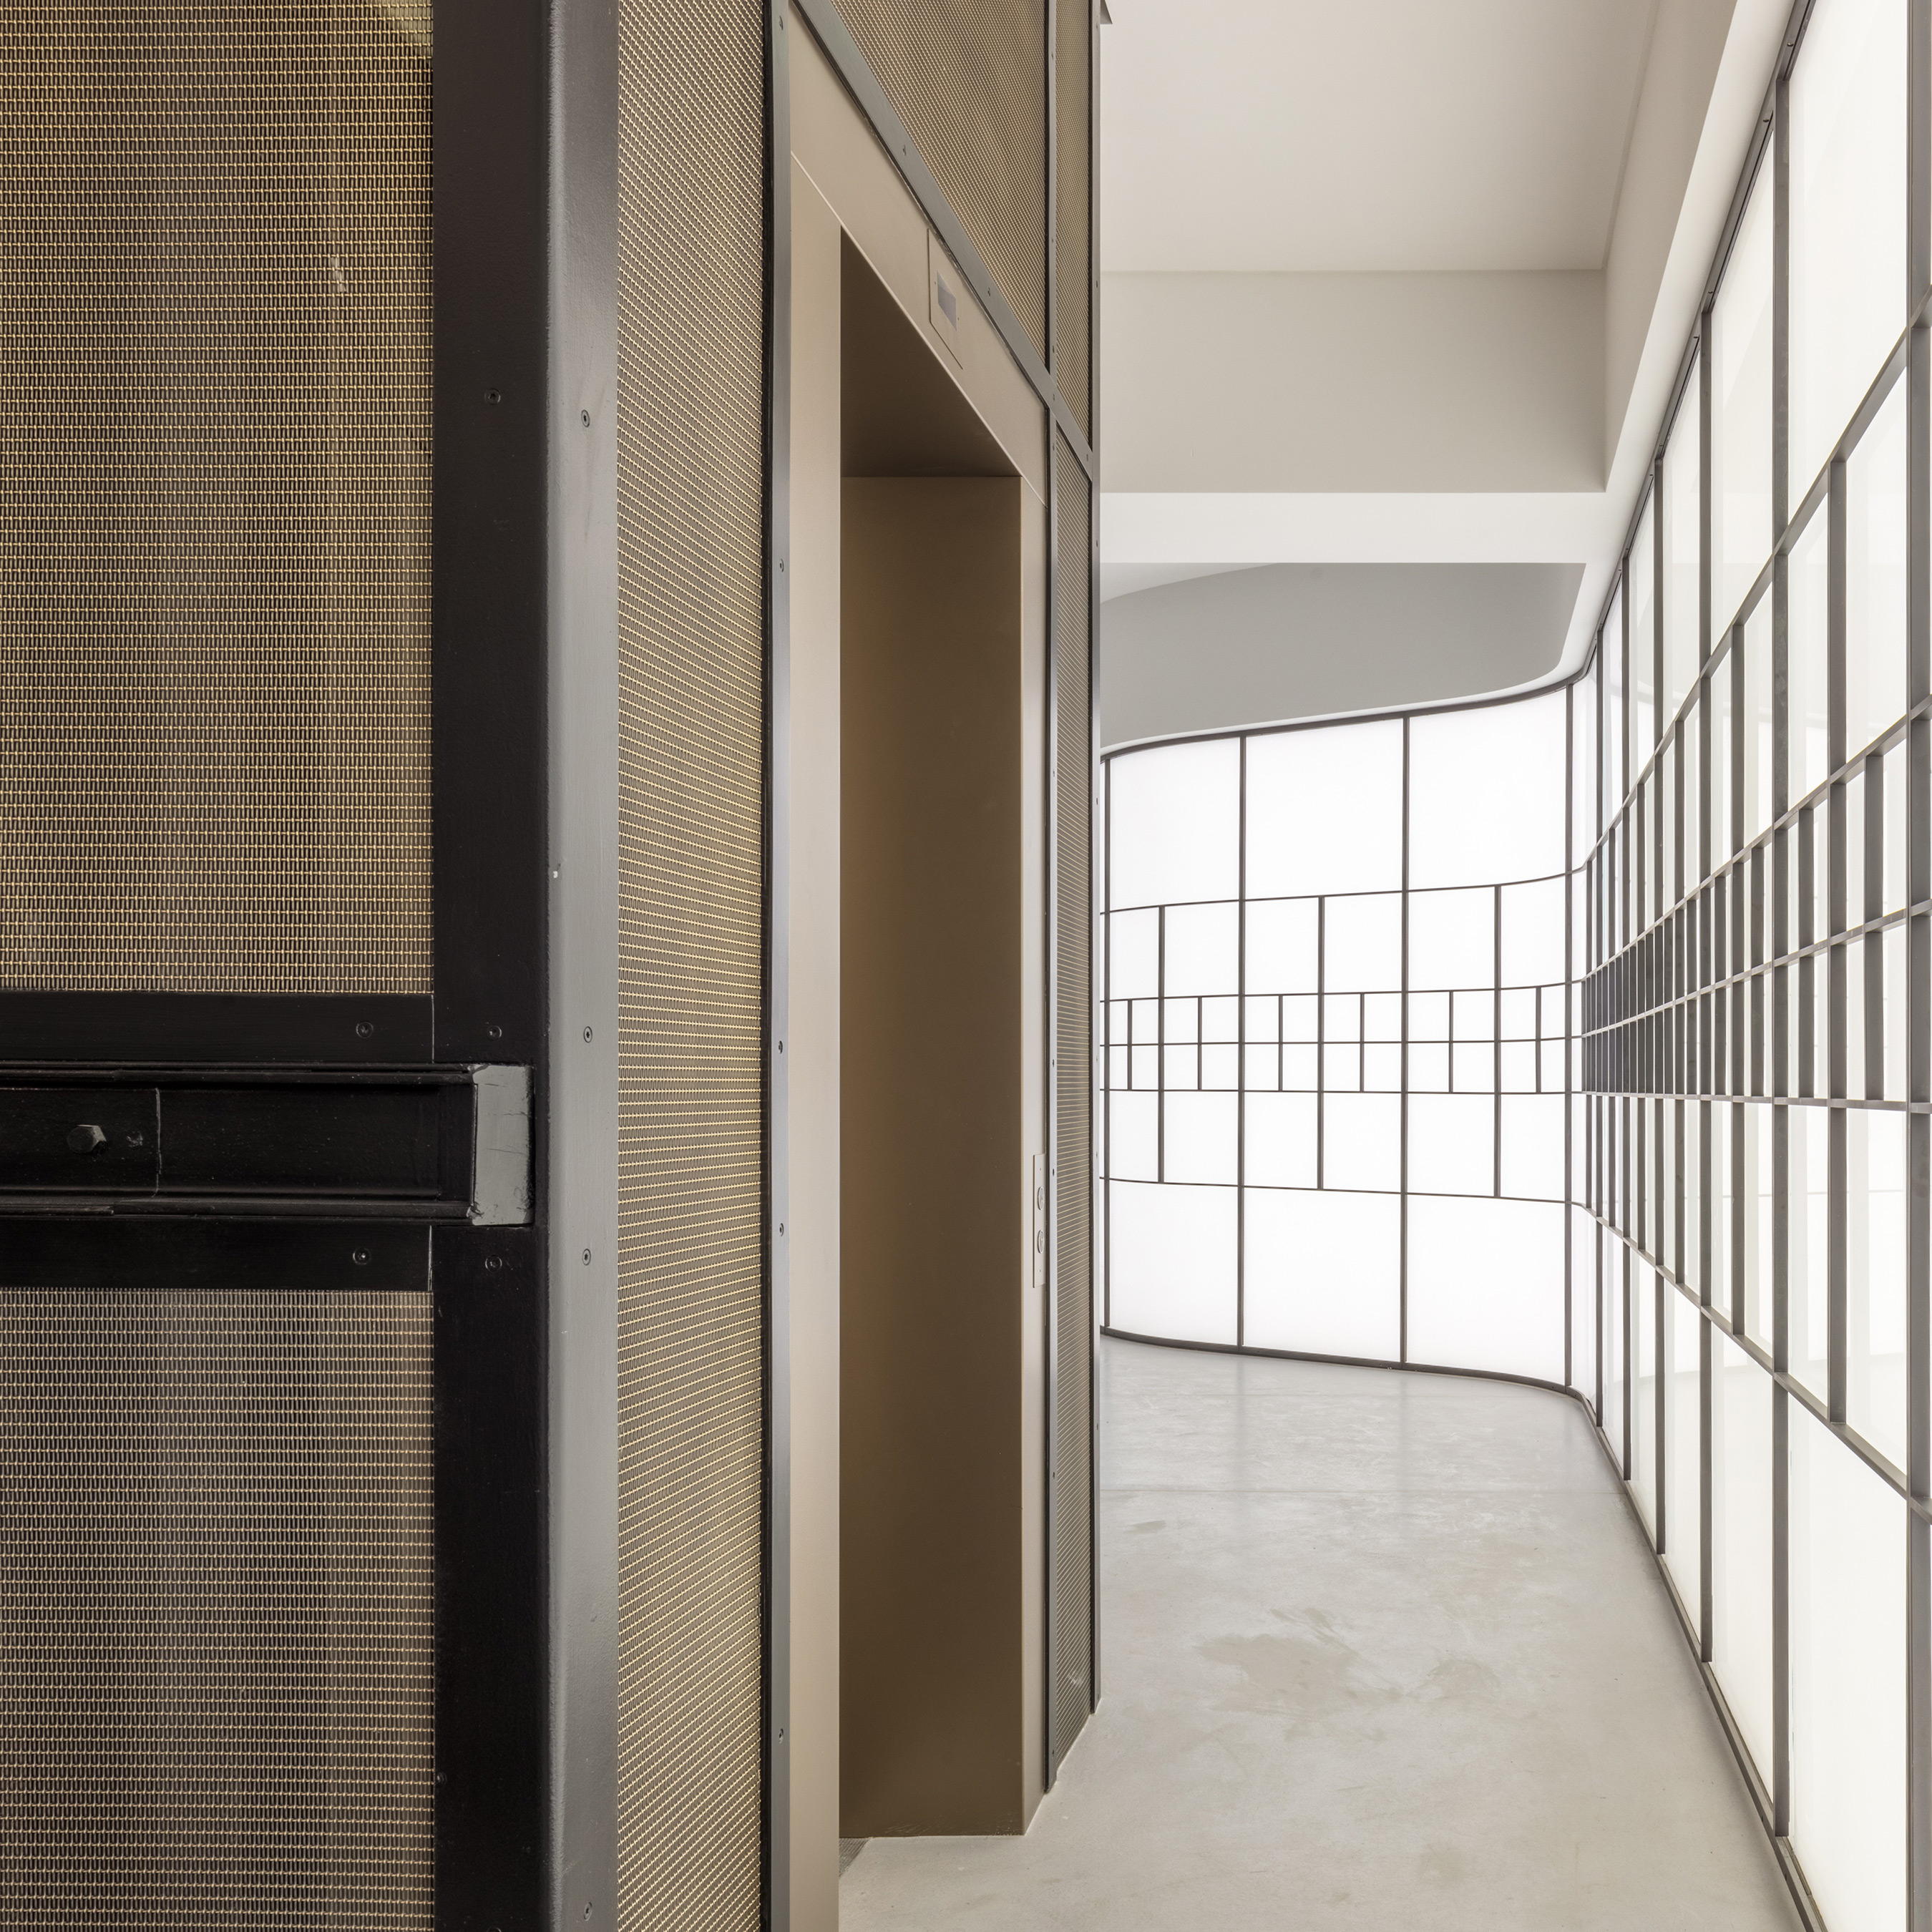 LPZ-71 with a decorative plating secondary finish emulates the feeling of luxury and sophistication that the Hatton Garden Street is historically known for.